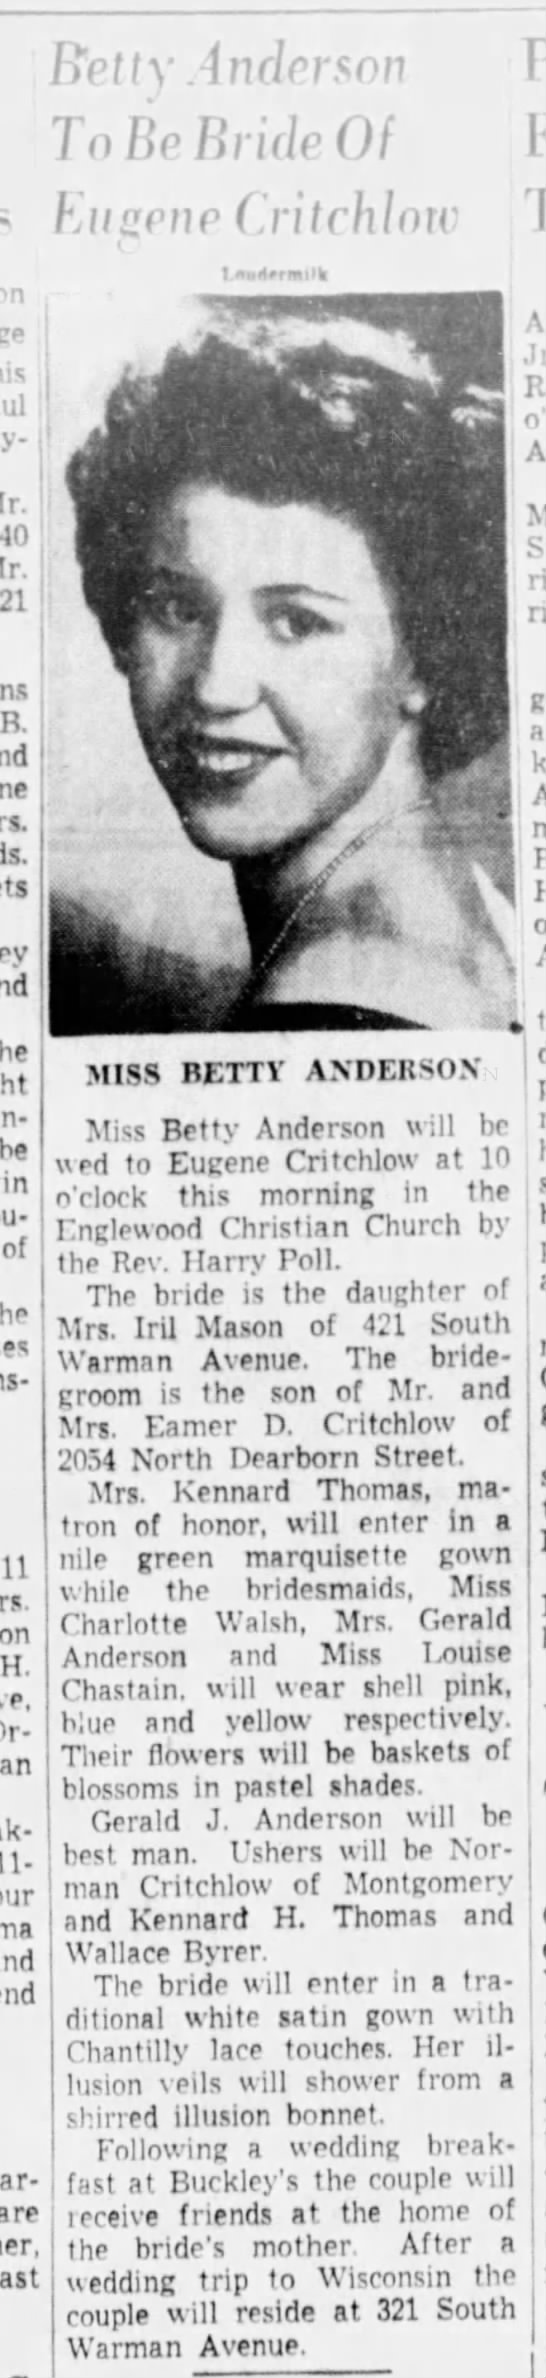 Eugene Critchlow and Betty Anderson Wedding - lctlx Andcnou To V llridr Of Euiscnc...